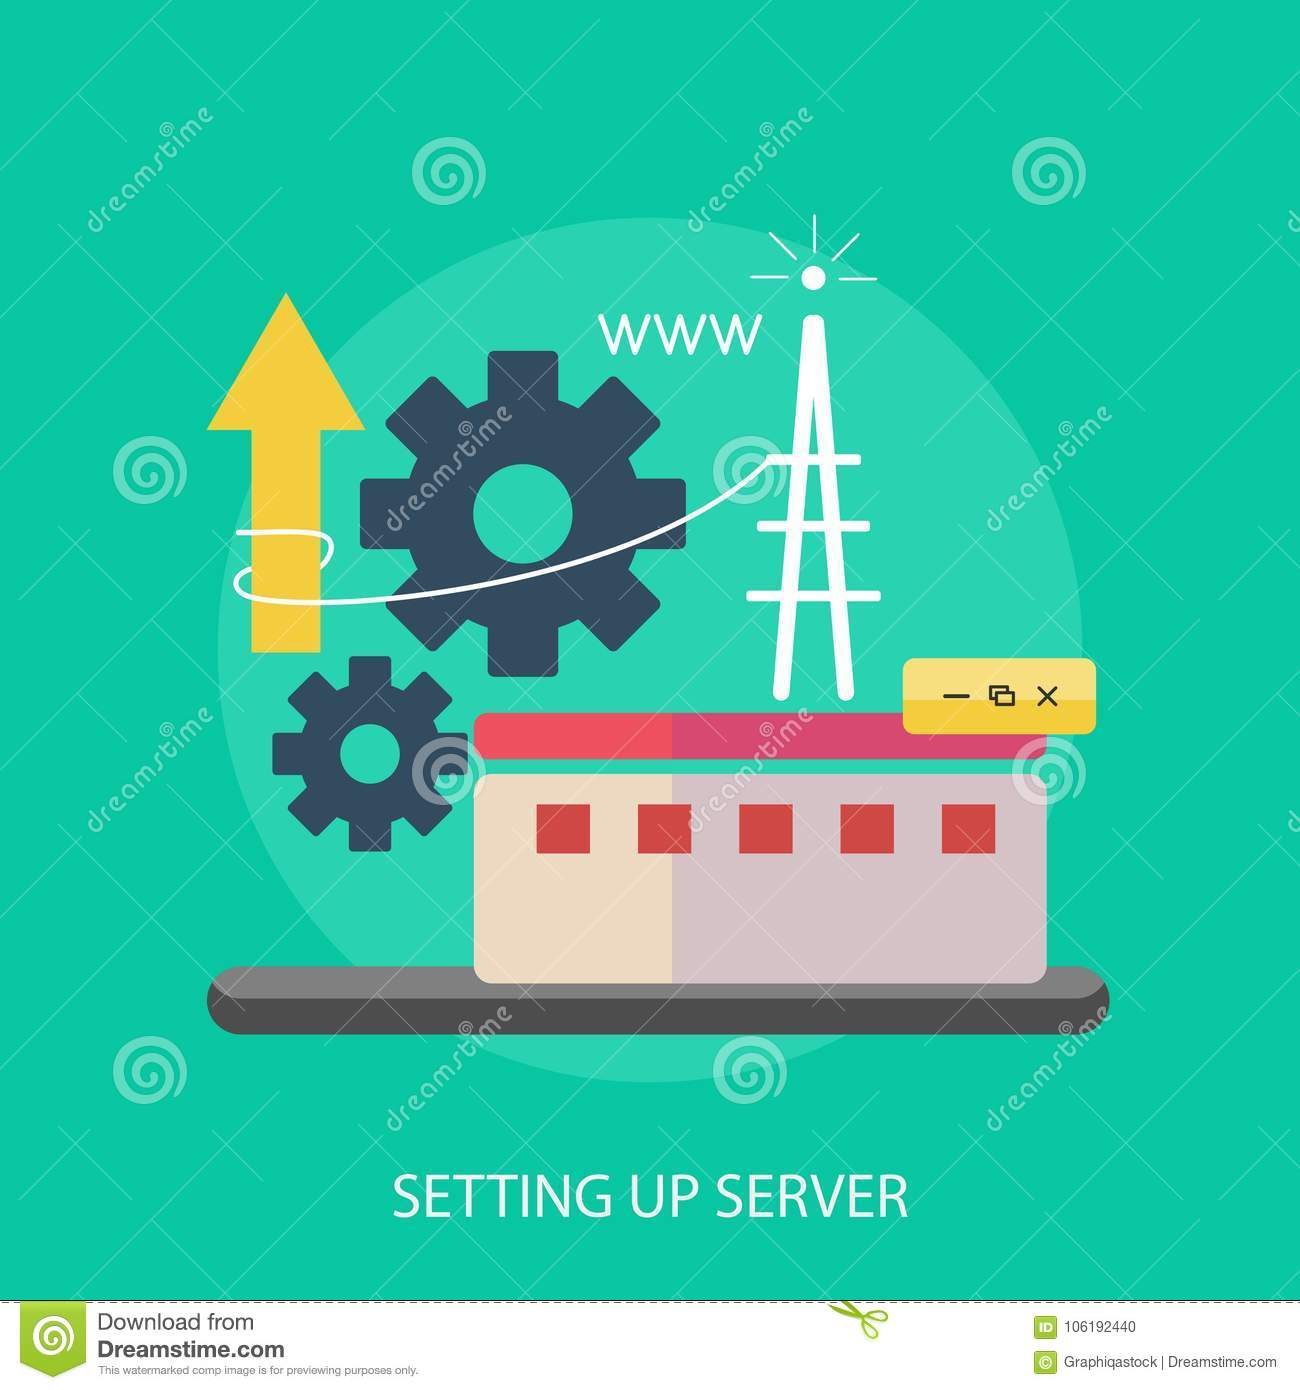 Setting Up Server Conceptual Design Stock Vector - Illustration of